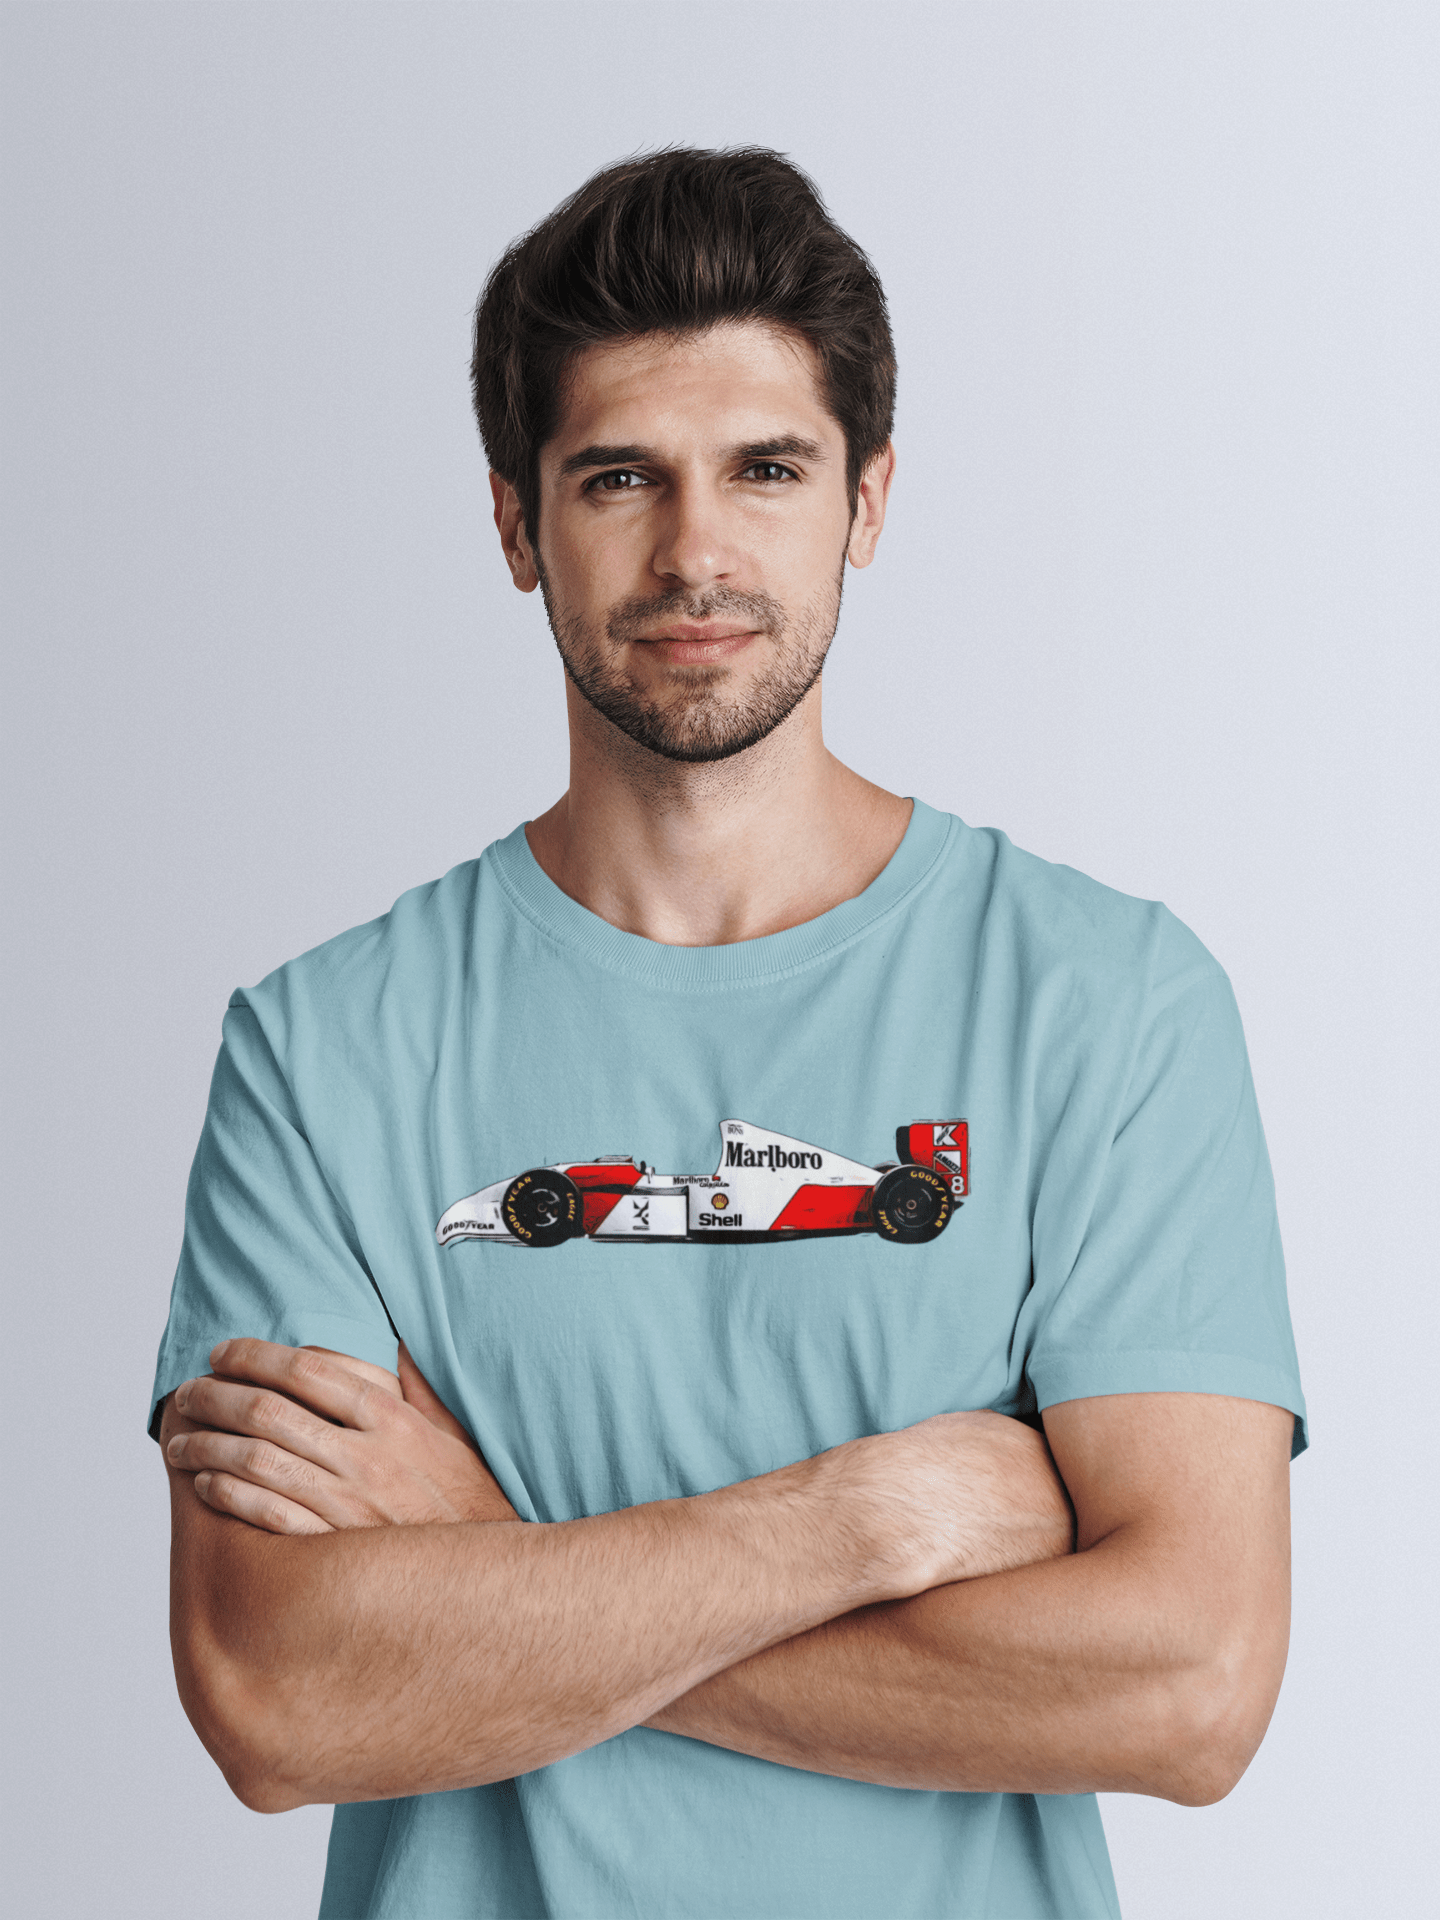 Senna's 1993 McLaren MP4-8 T-Shirt